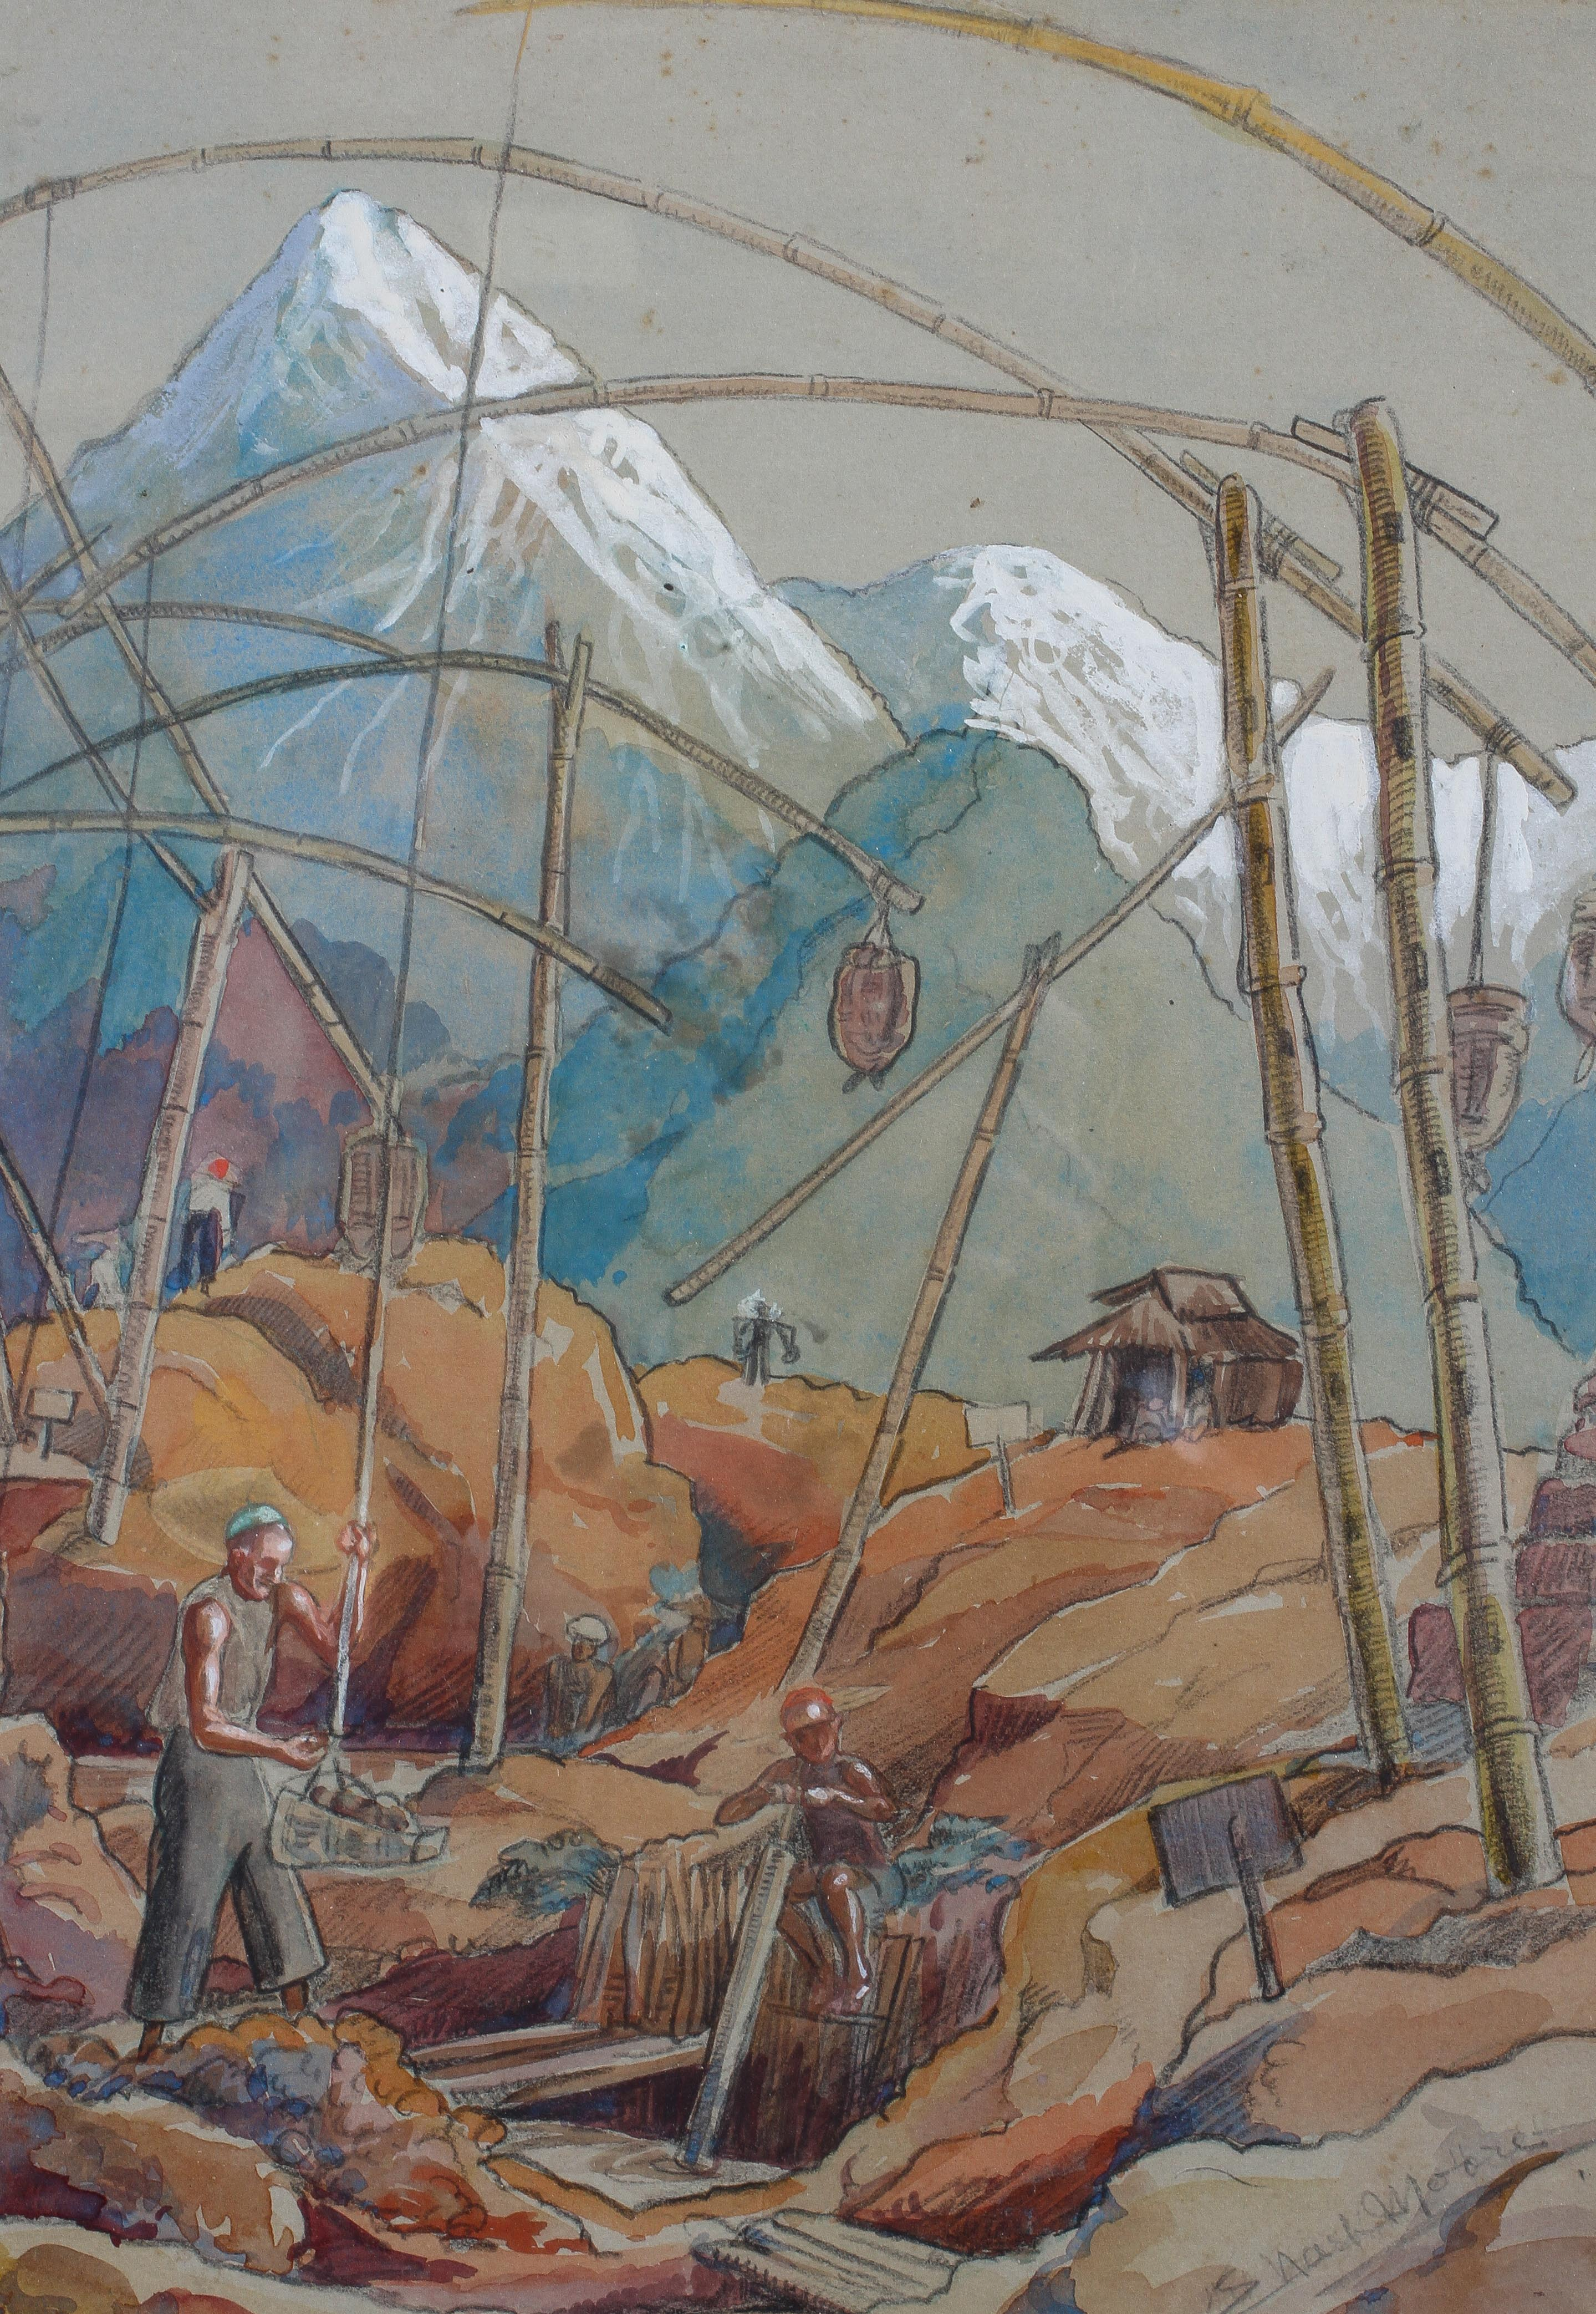 E Nash Moore, pencil and watercolour, Mountainous construction scene, signed lower right,